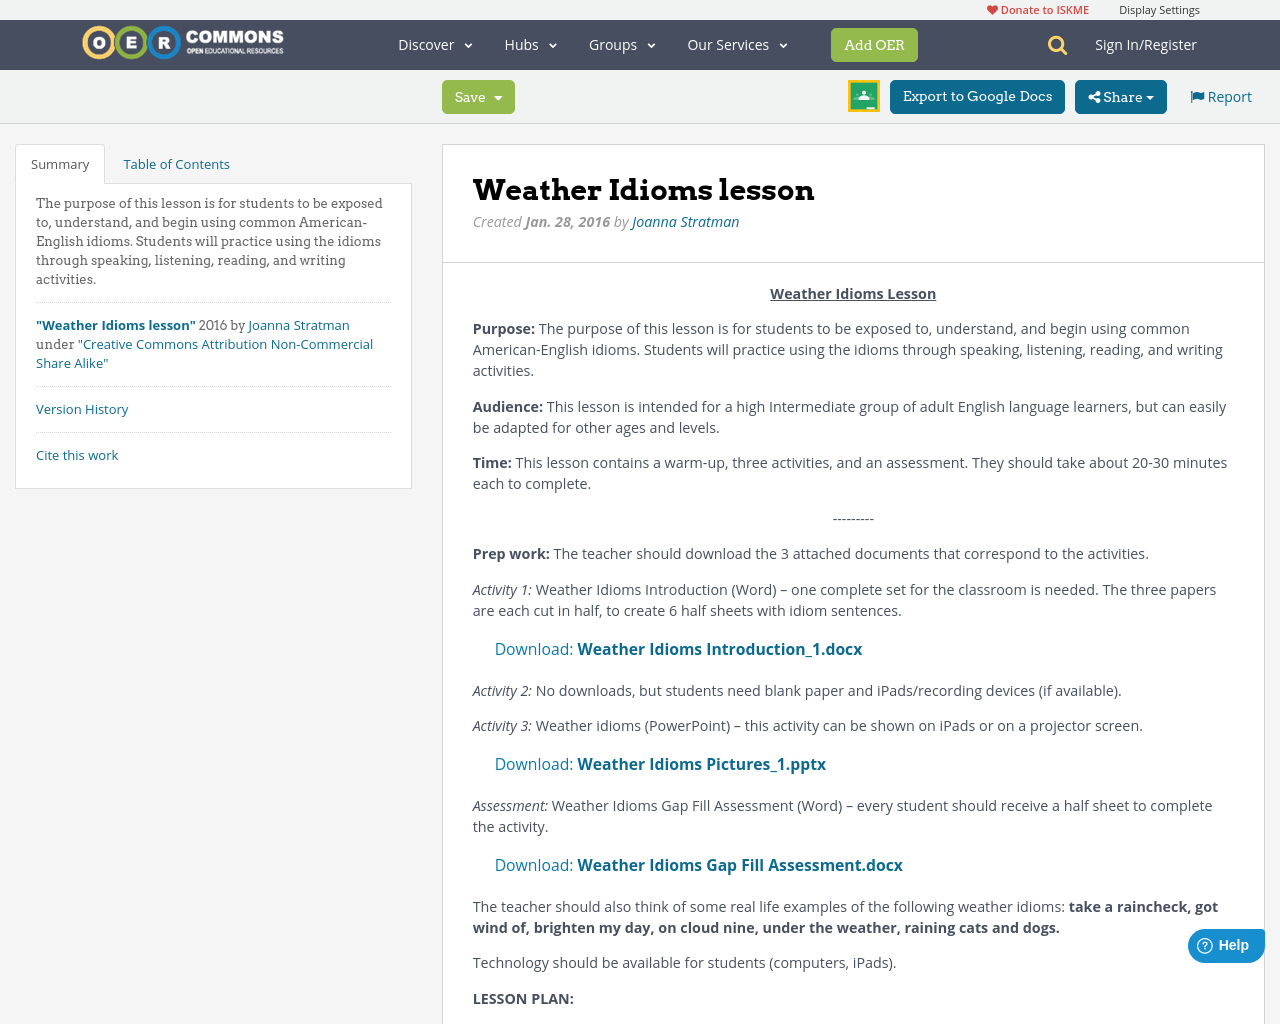 Weather Idioms Lesson Oer Commons